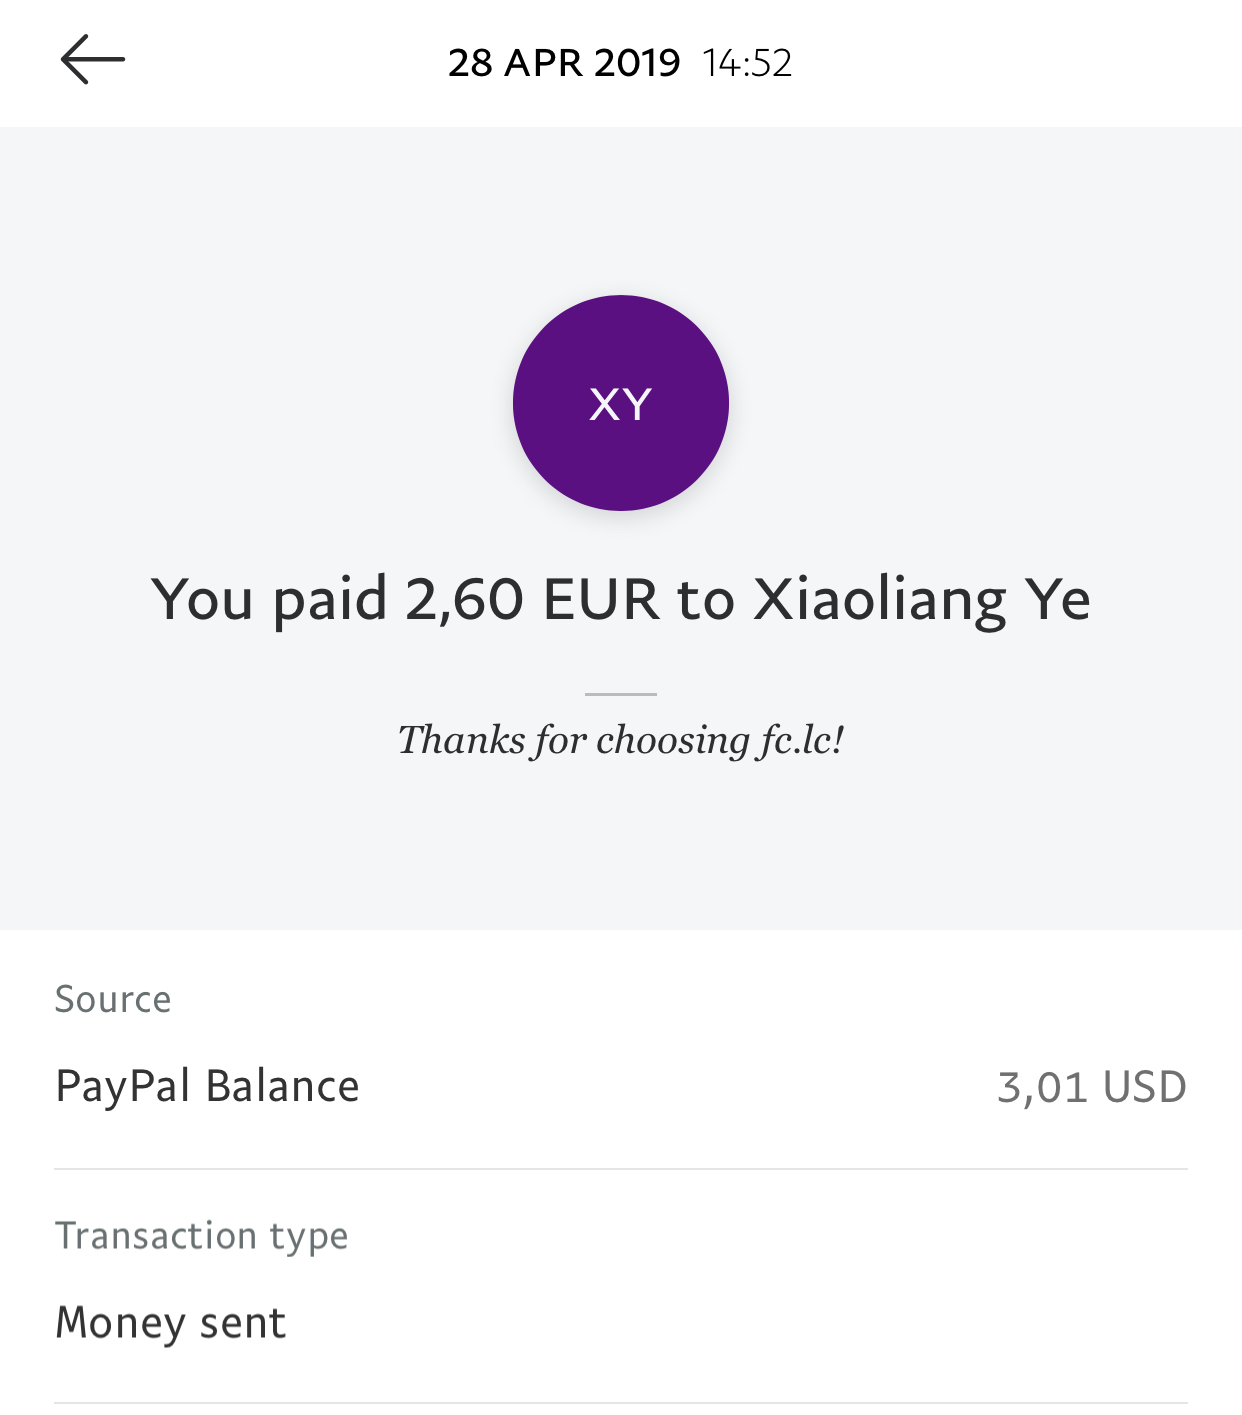 FC.LC Payment Proof